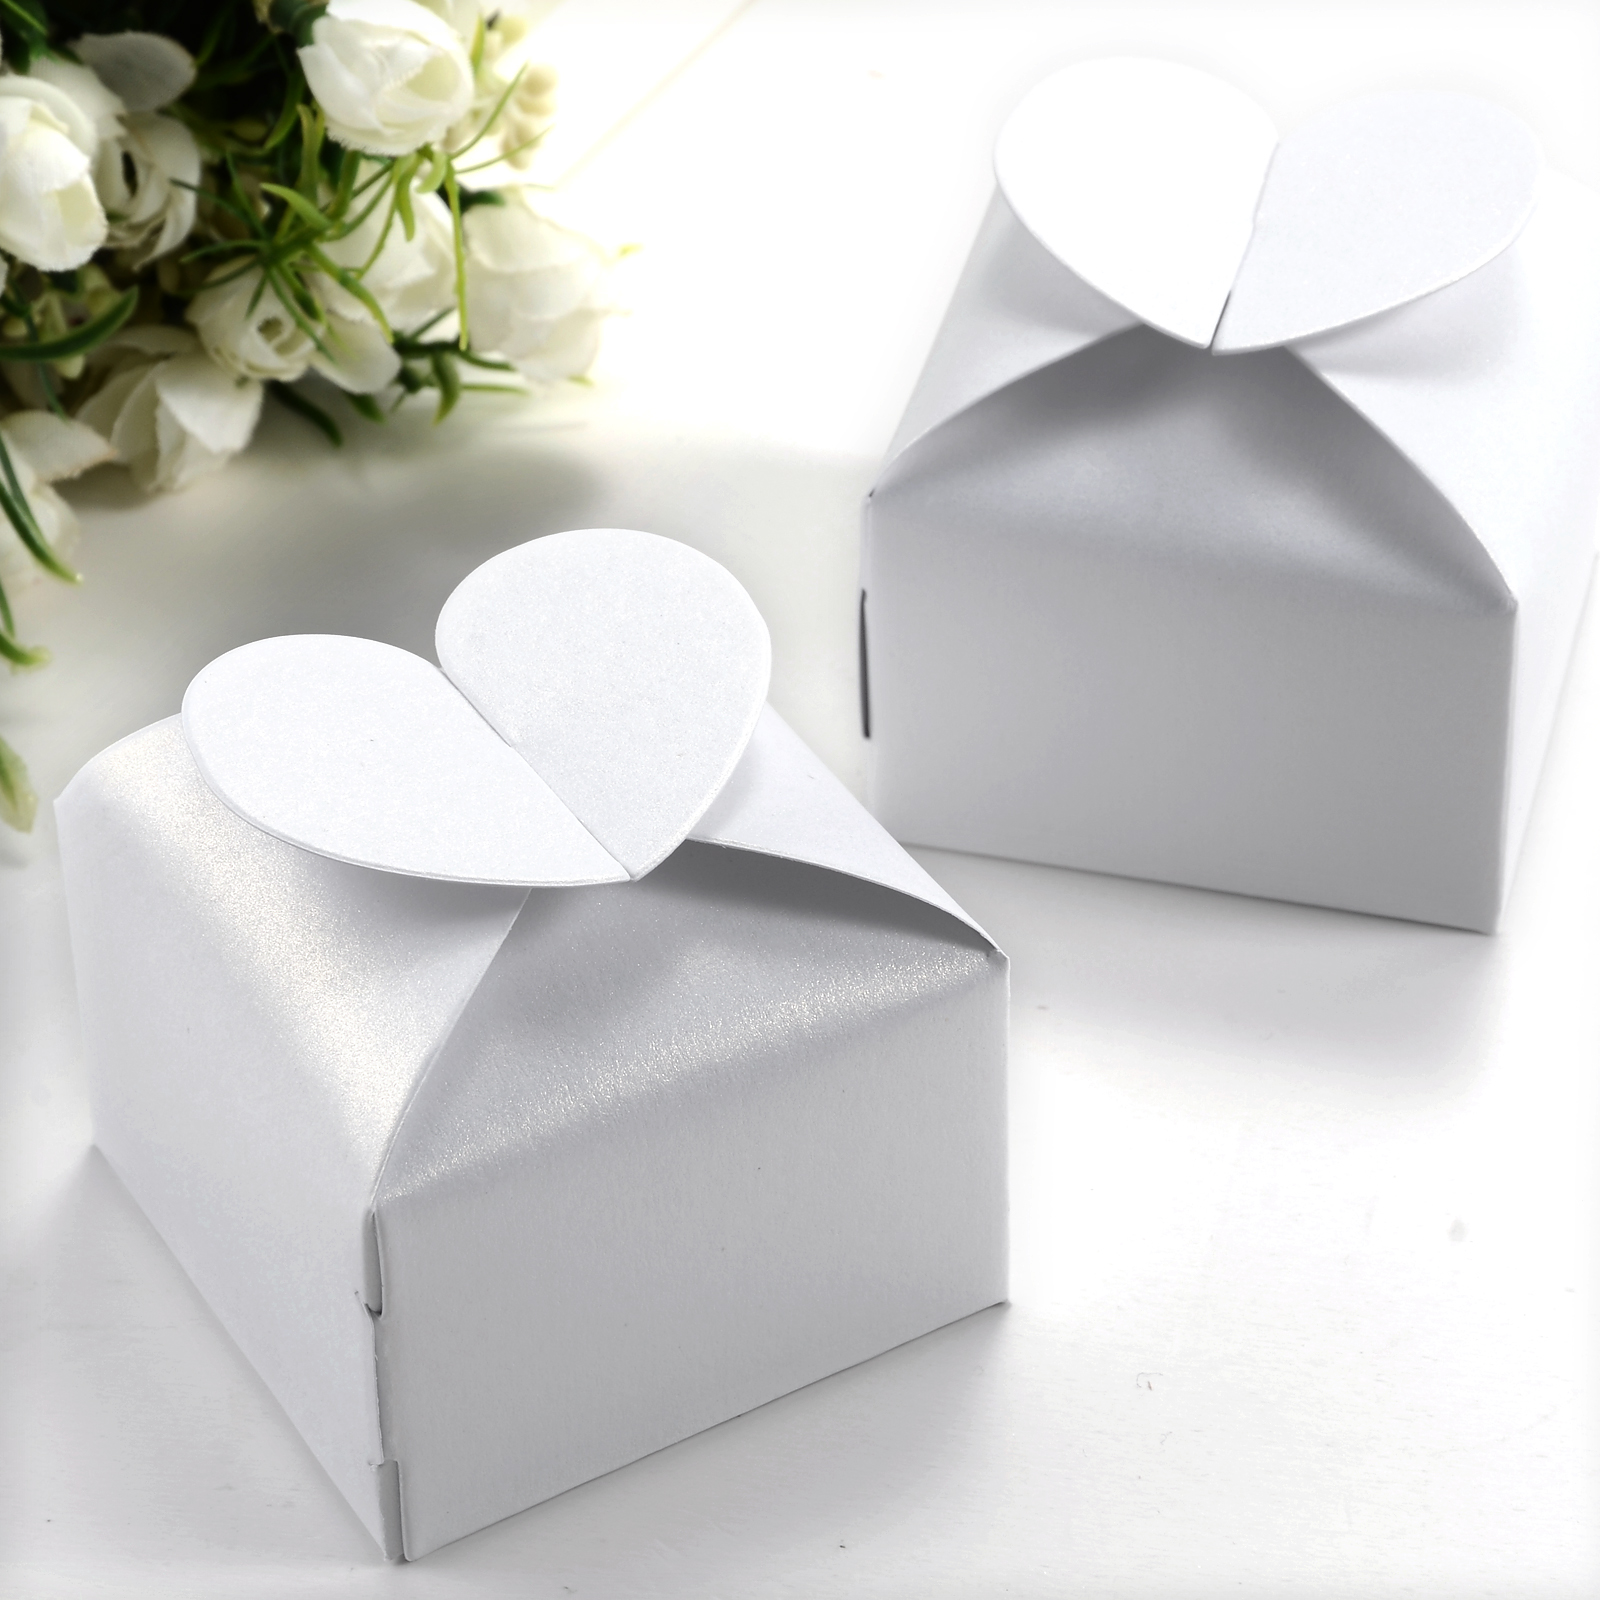 50 PCS Wedding Favor Gift Candy Boxes Heart Style FOR Wedding Party